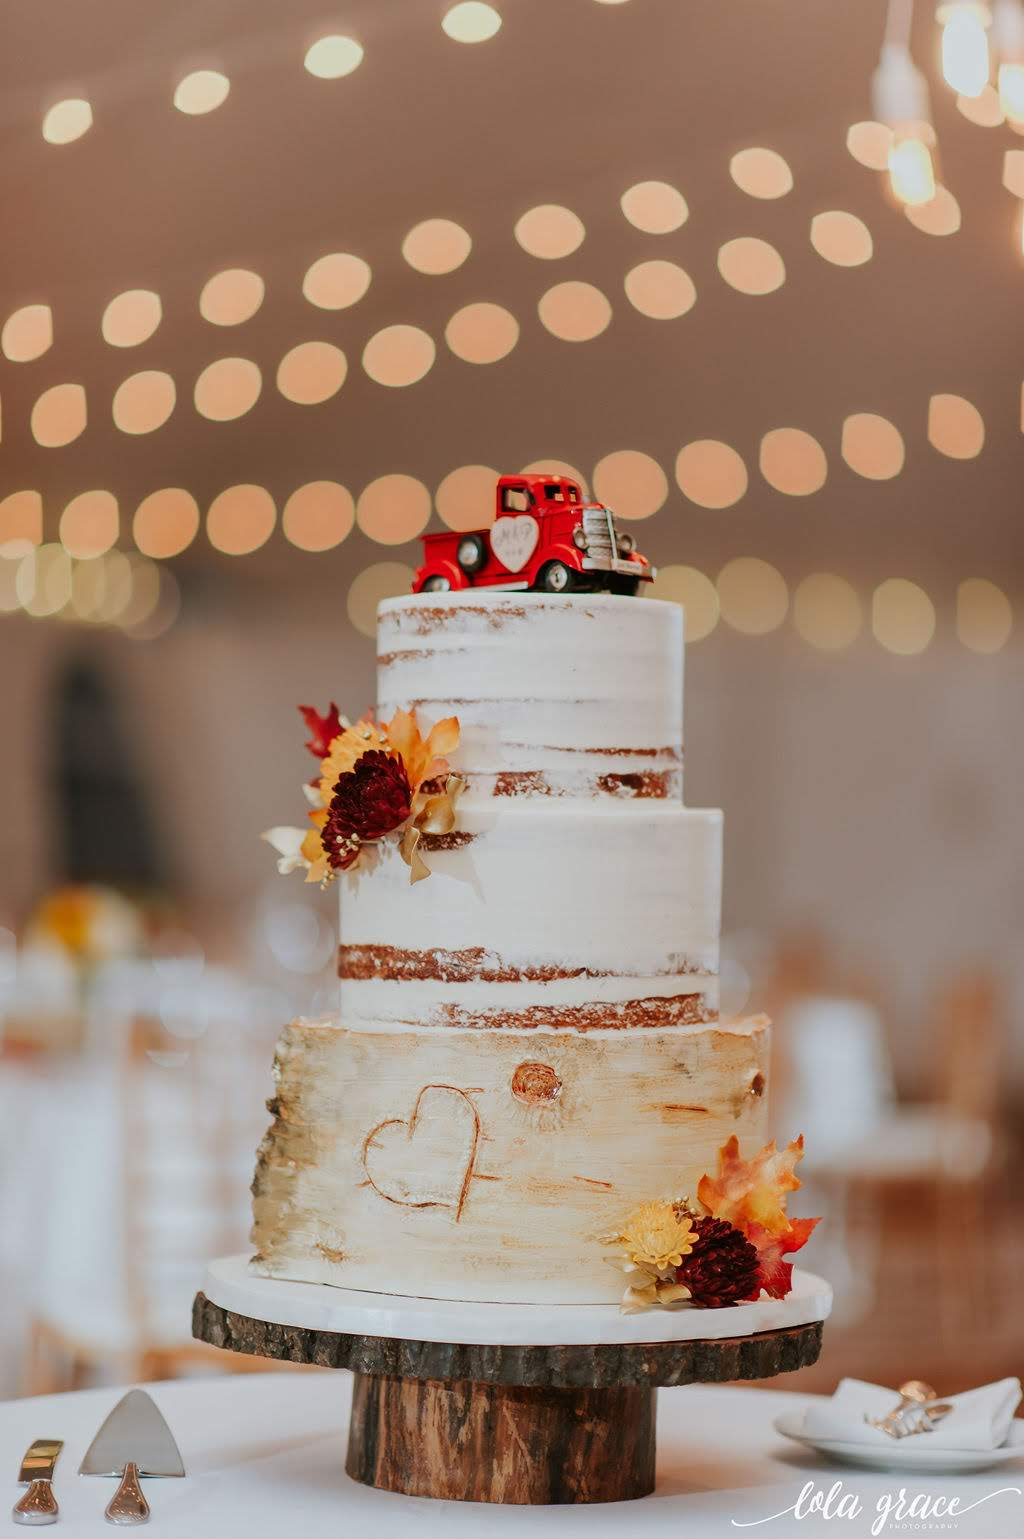 Their meaningful cake topper was modeled after Paul's grandfather's truck.